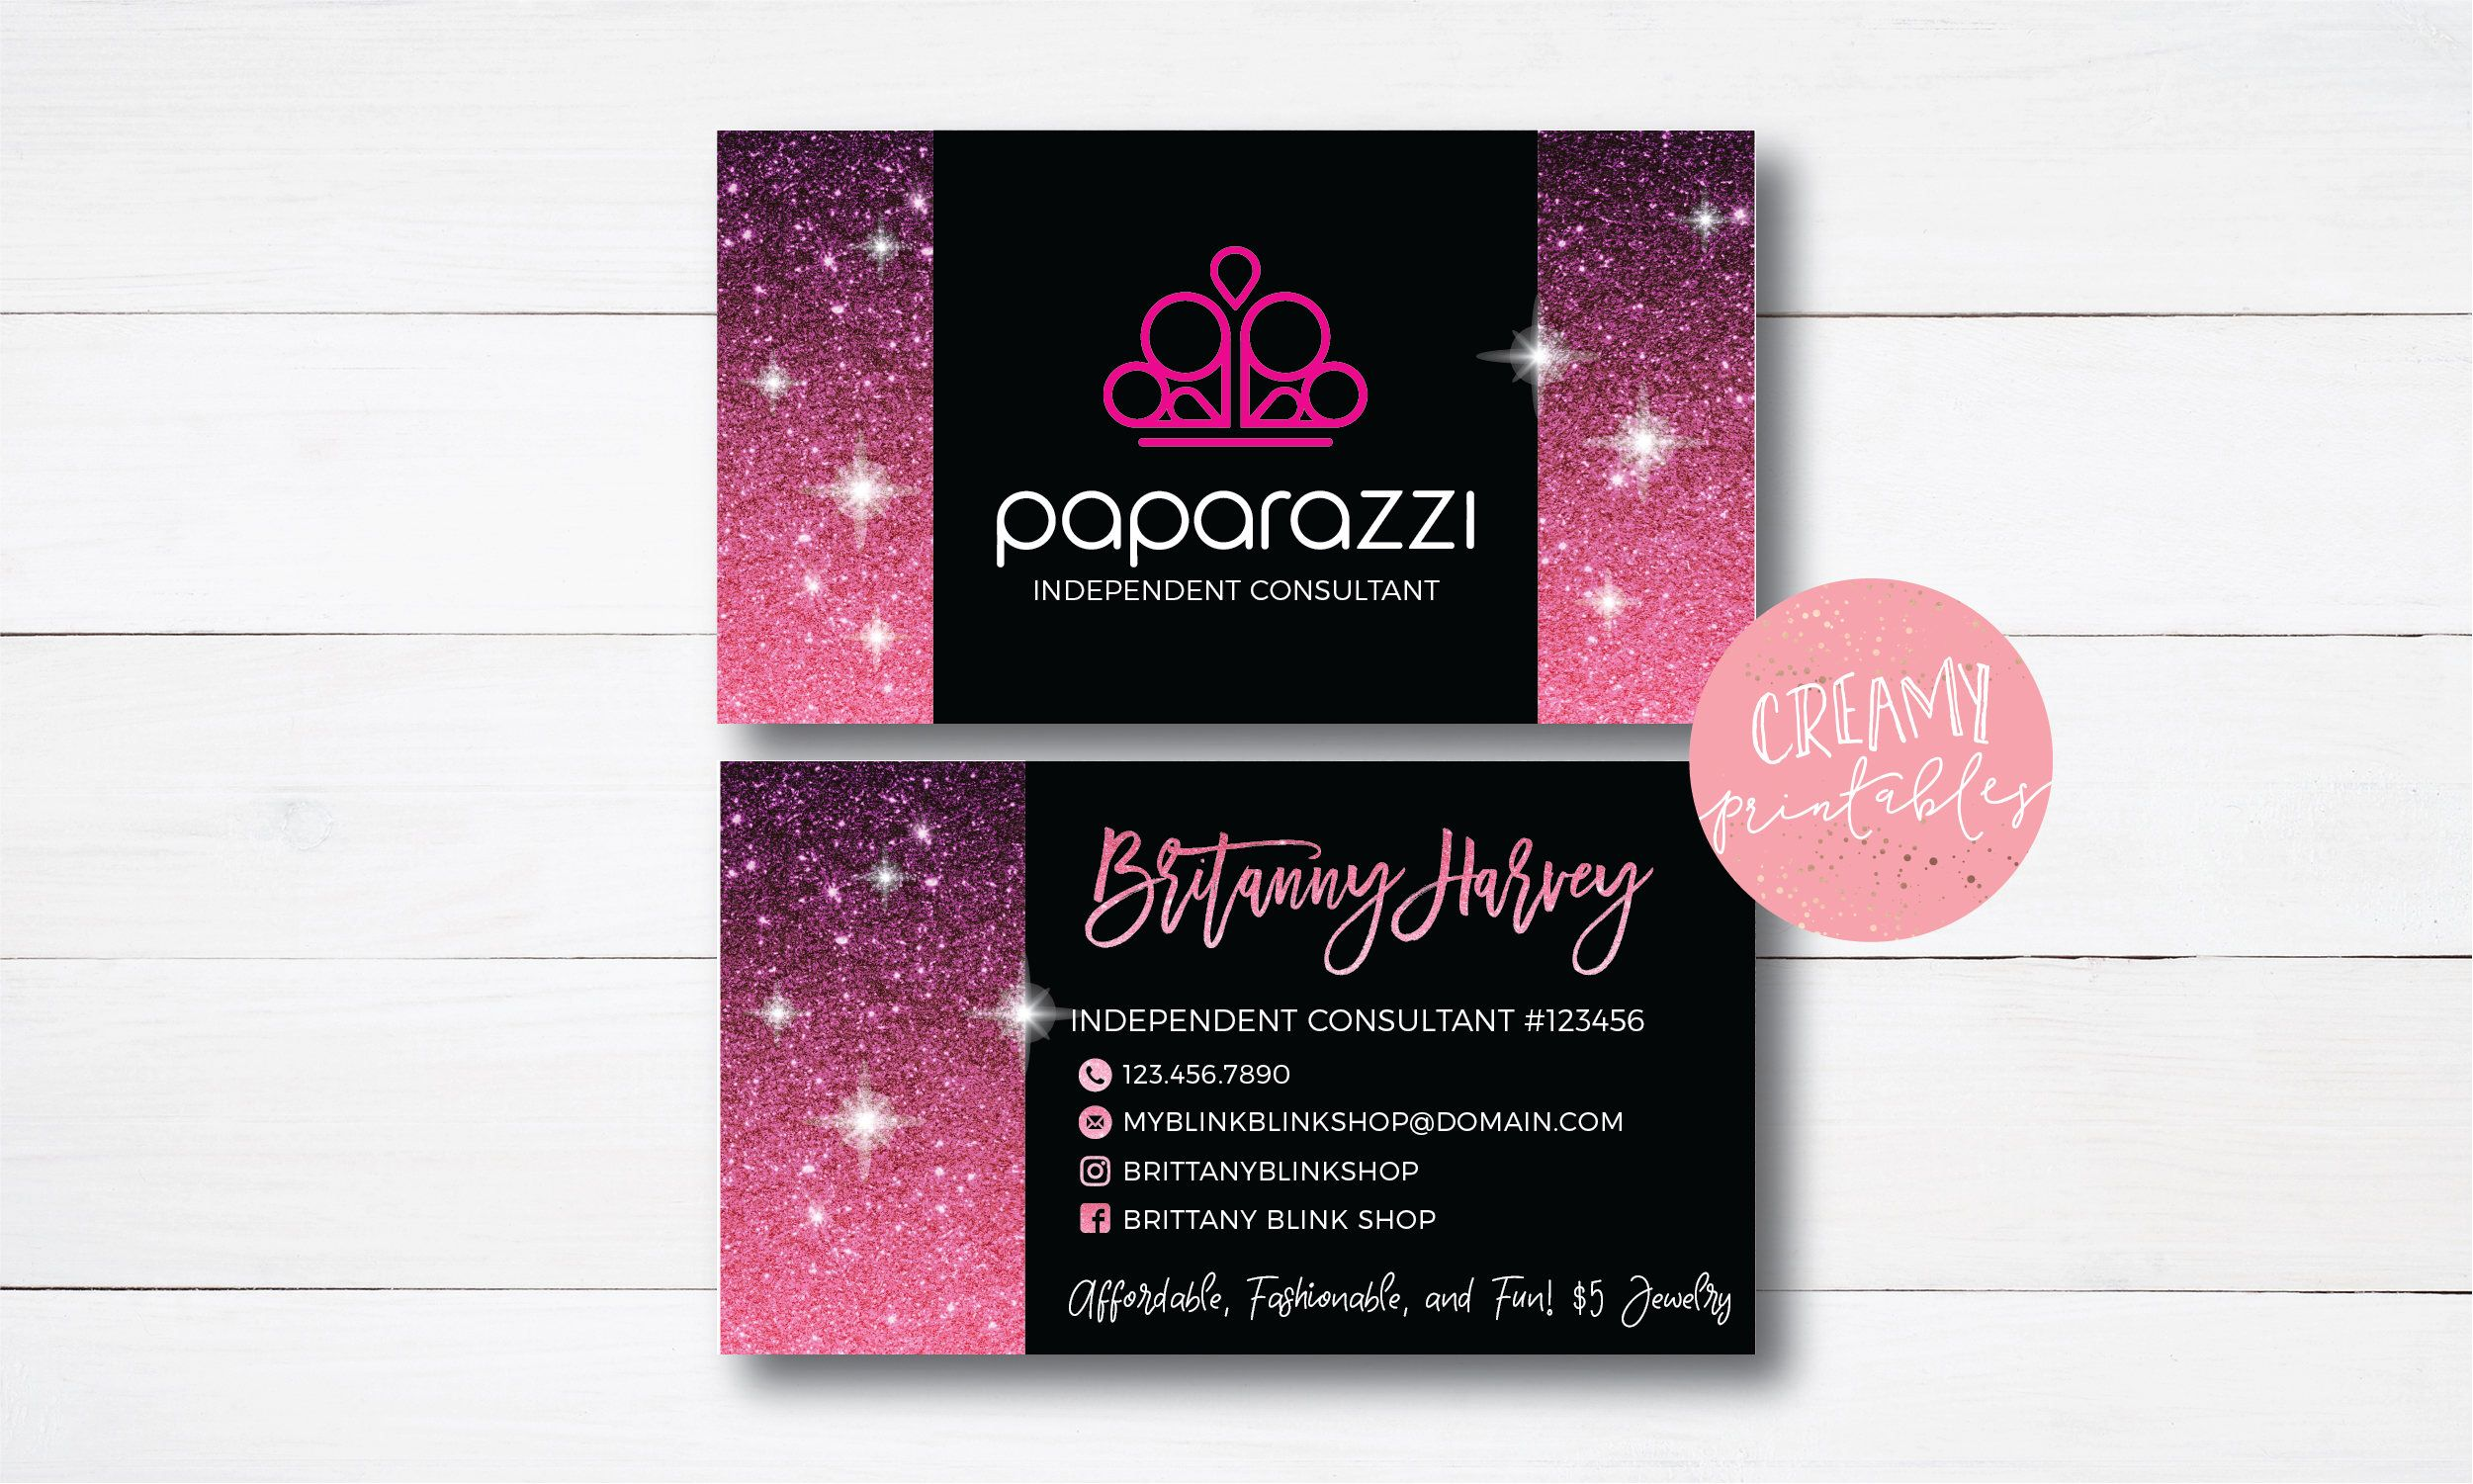 Paparazzi business cards free personalized paparazzi jewelry paparazzi business cards free personalized paparazzi jewelry consultant card ombre glitter for vistaprint or home printing colourmoves Choice Image